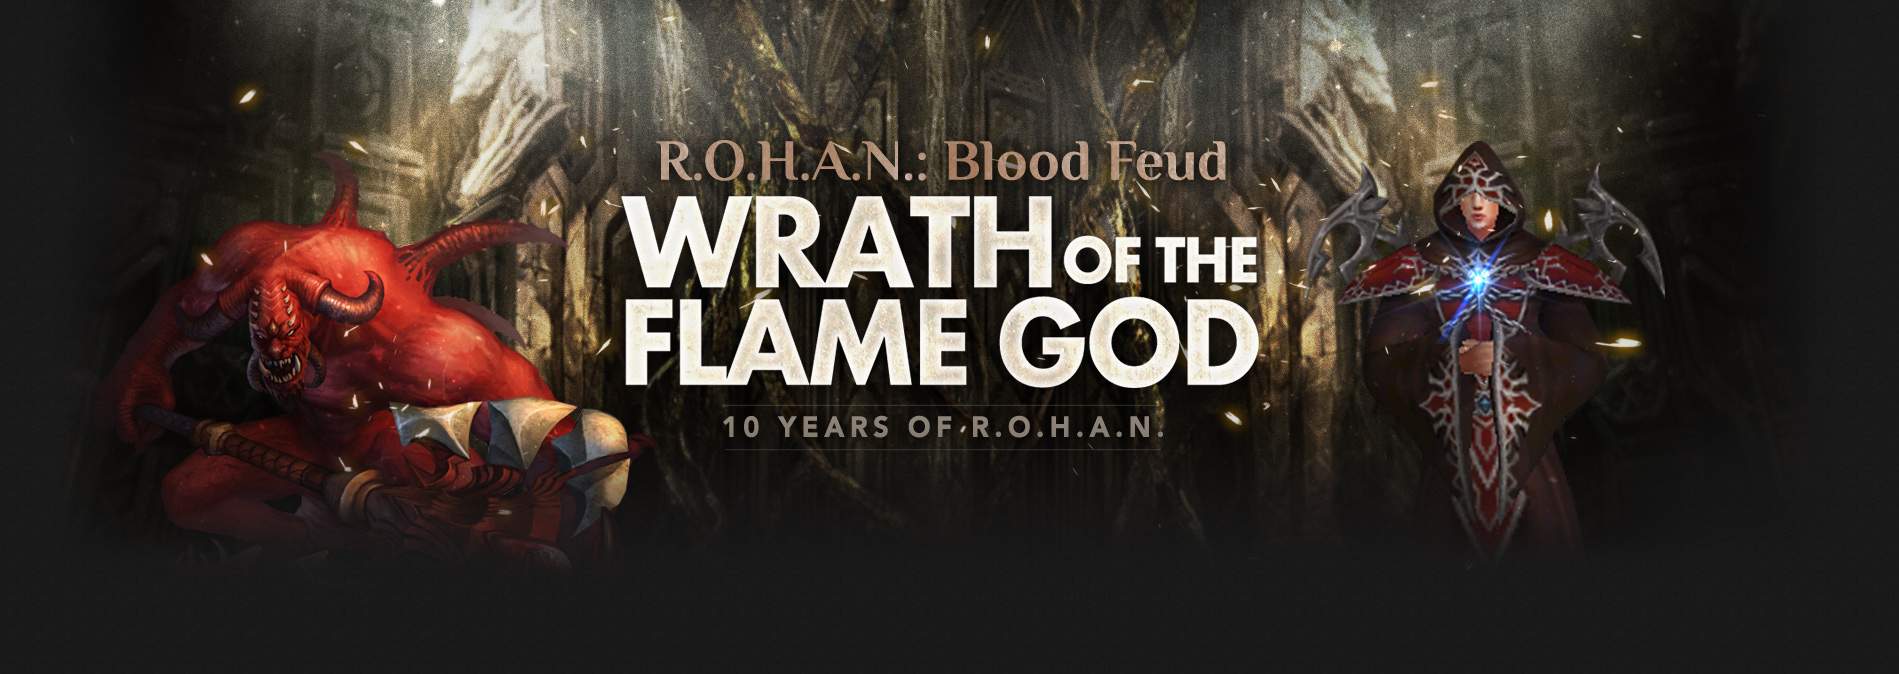 R.O.H.A.N: Blood Feud